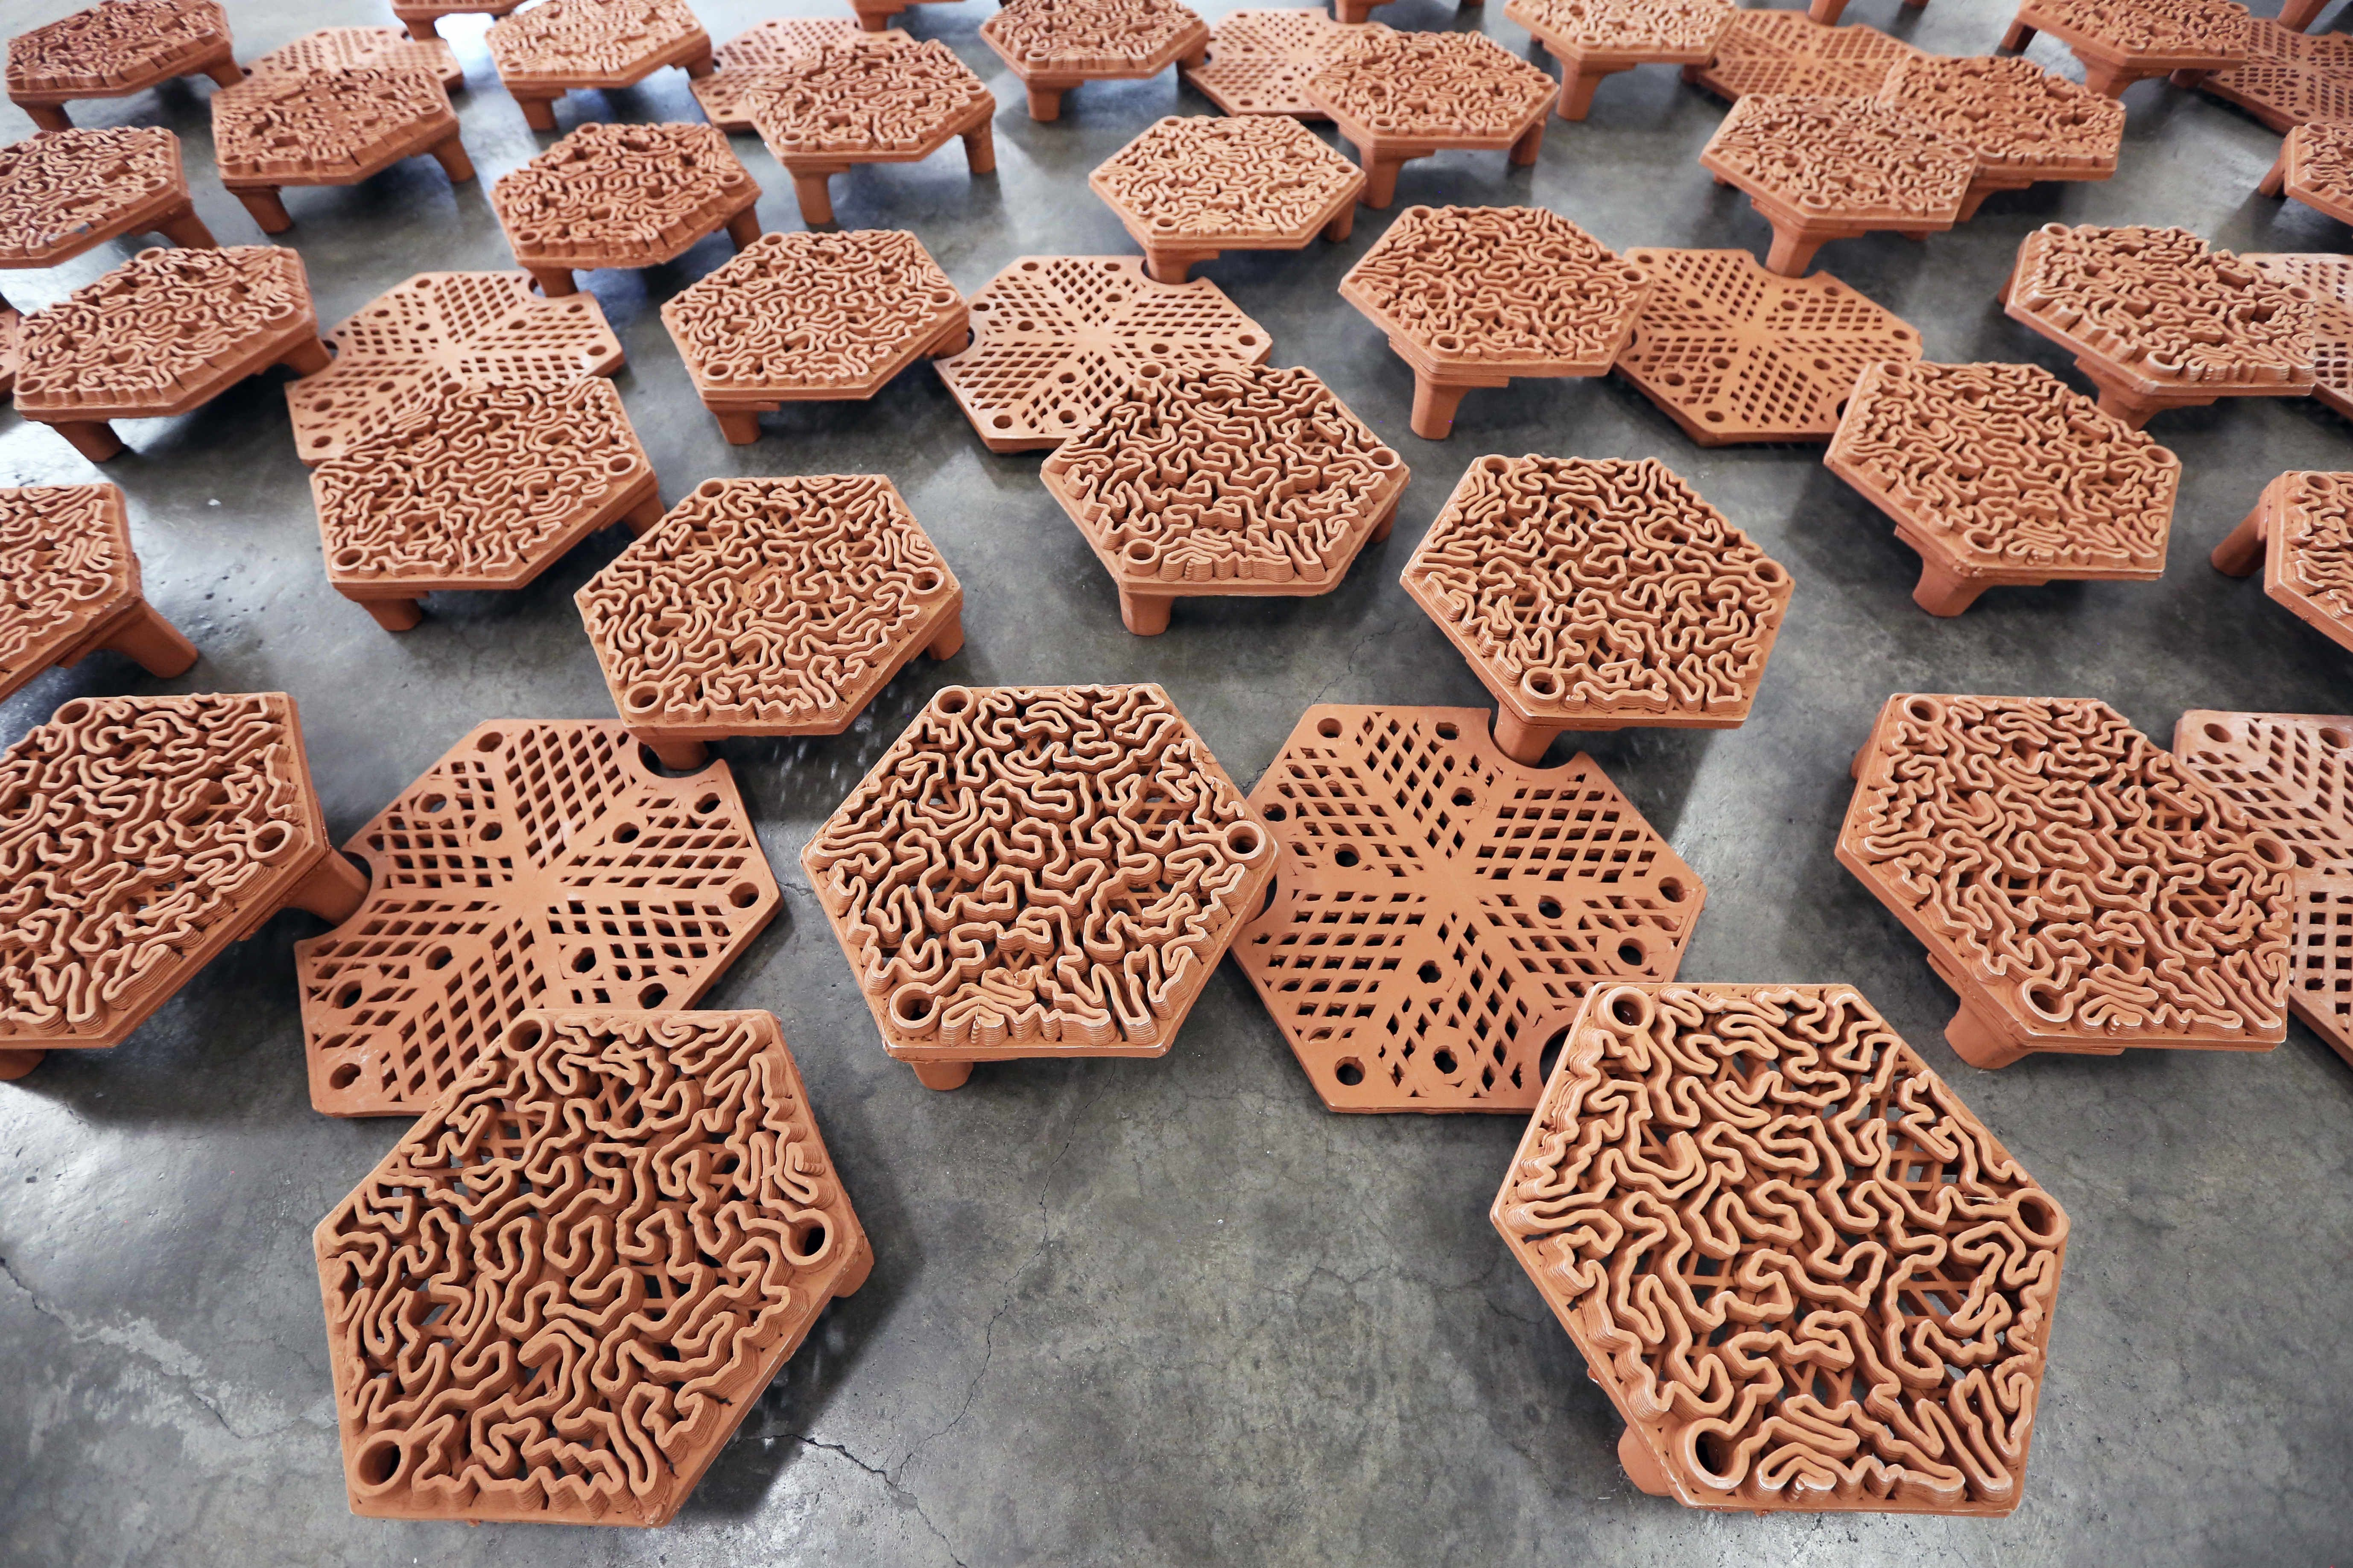 Three different types of 3D printed tiles used for coral attachment. Photo via Hong Kong University.